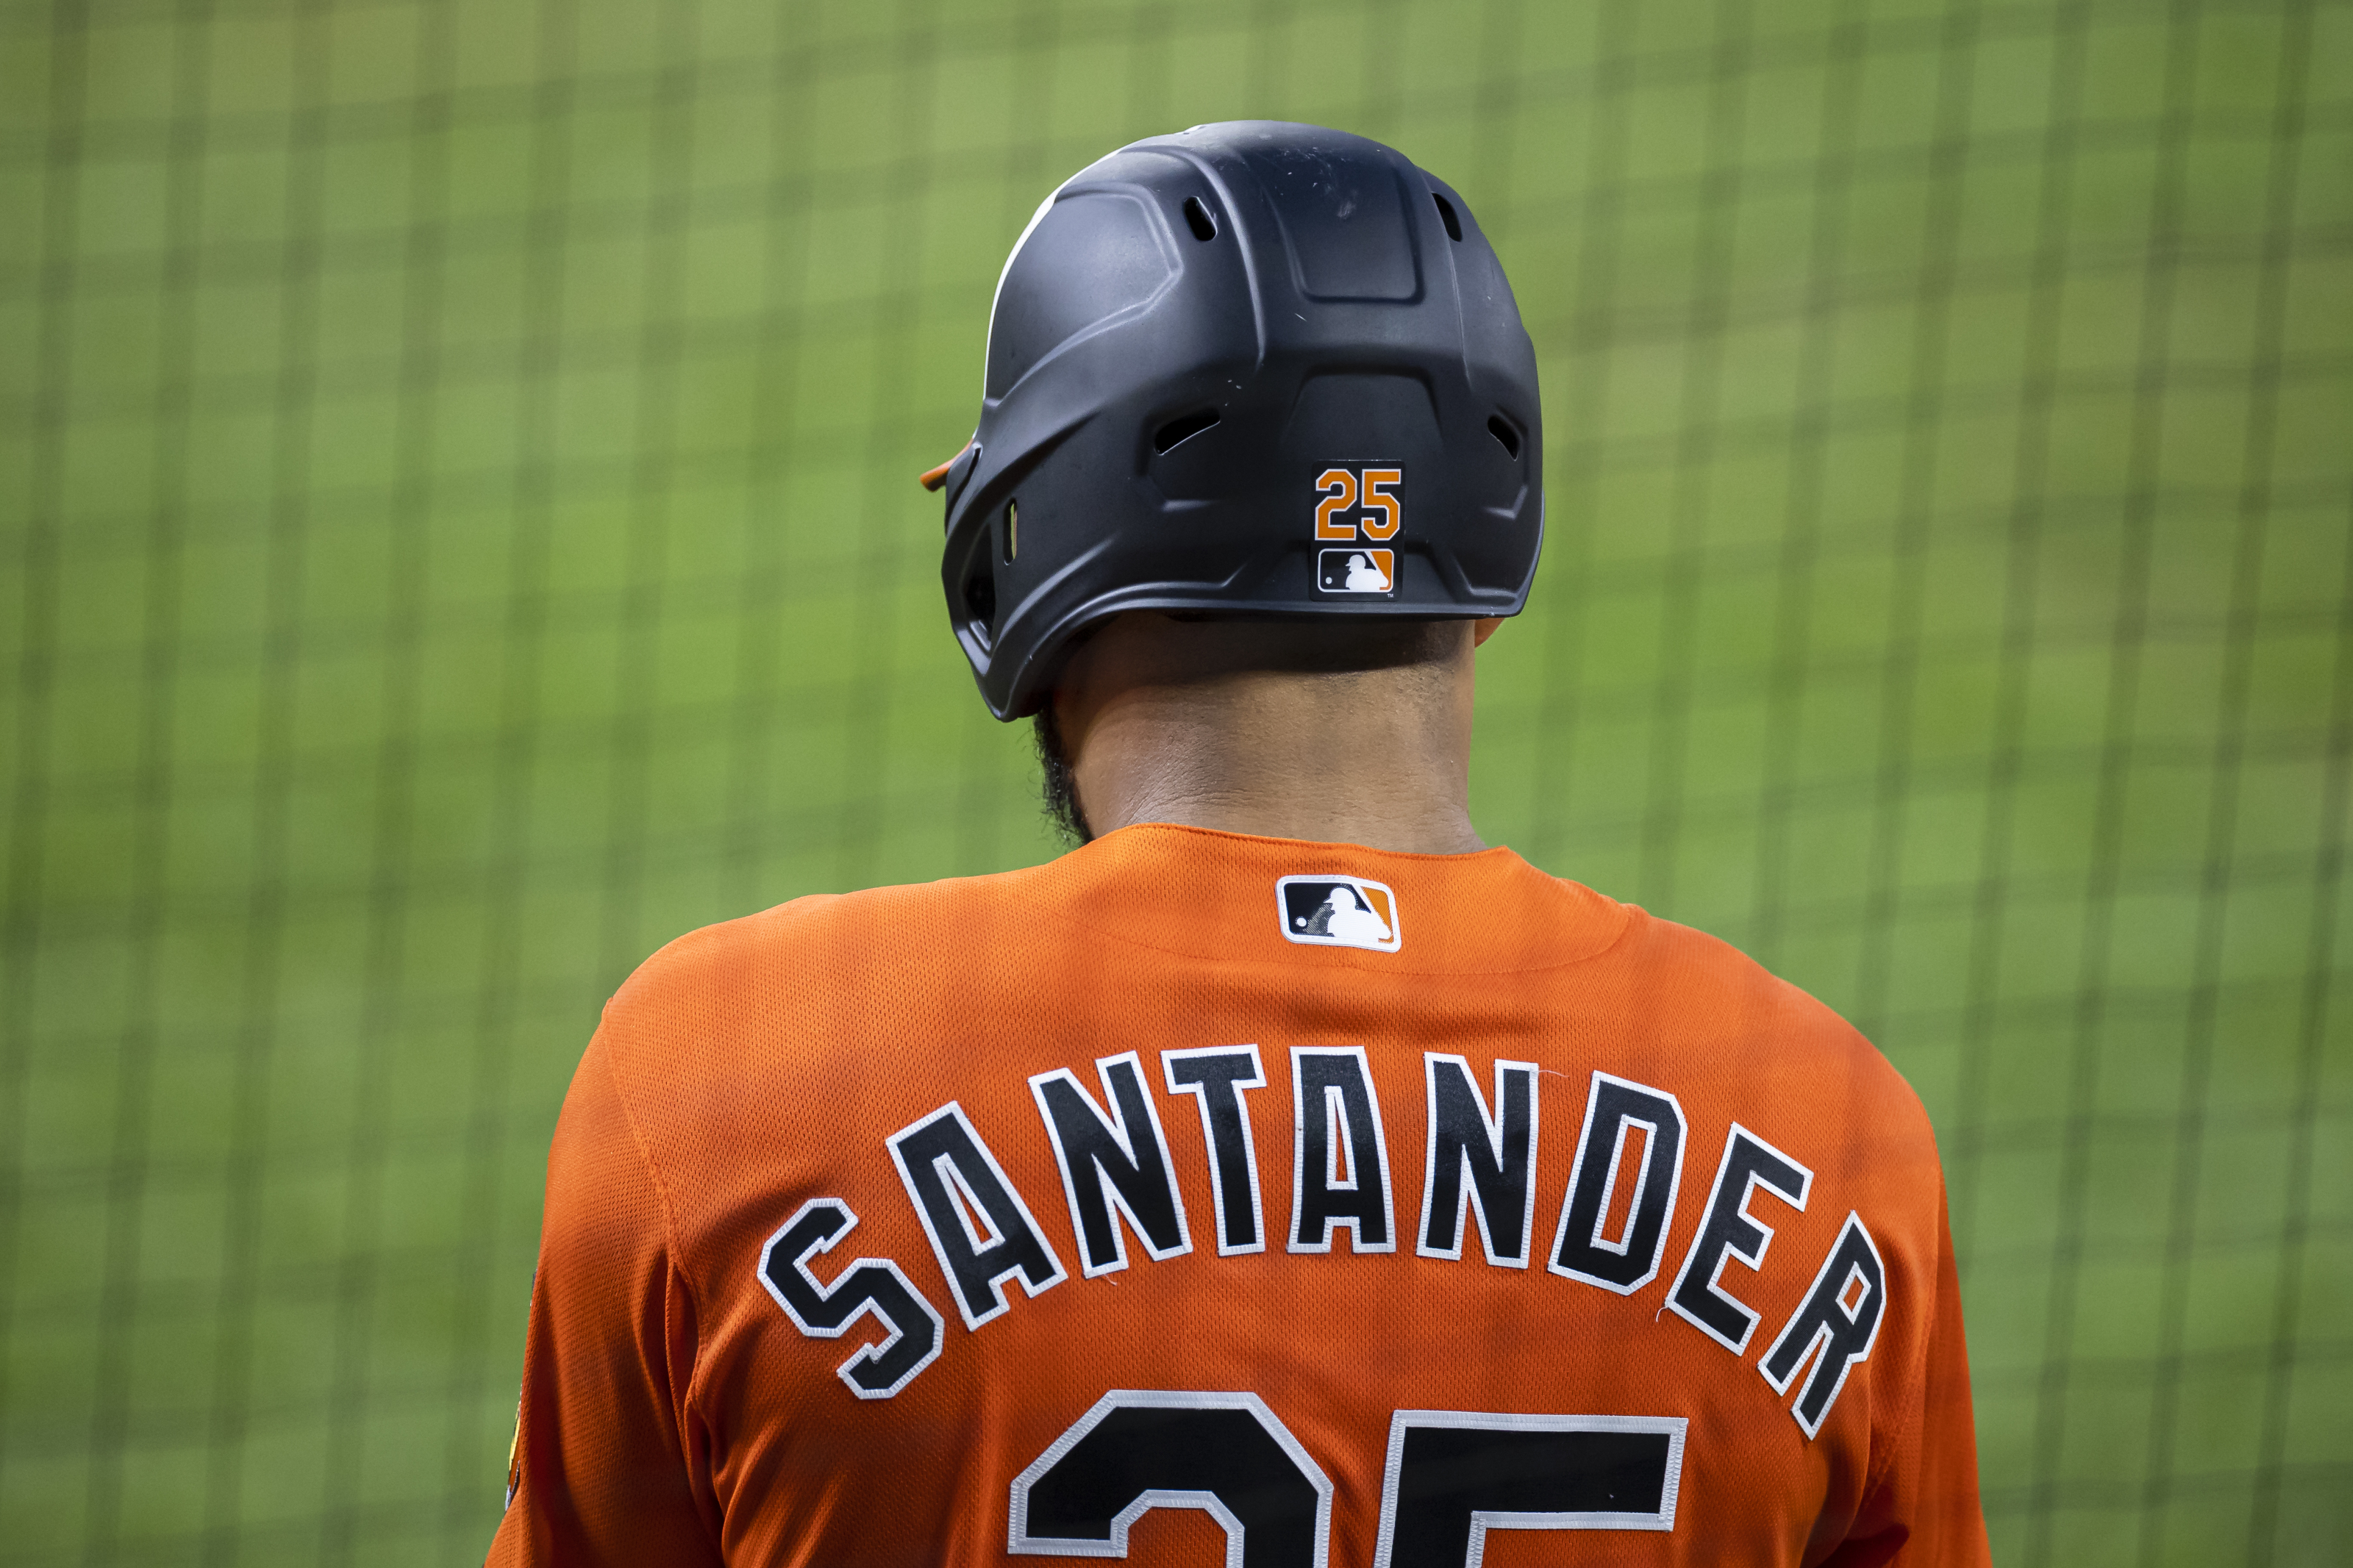 Baltimore Orioles: Anthony Santander Hit Streak Ends in Loss to Rays